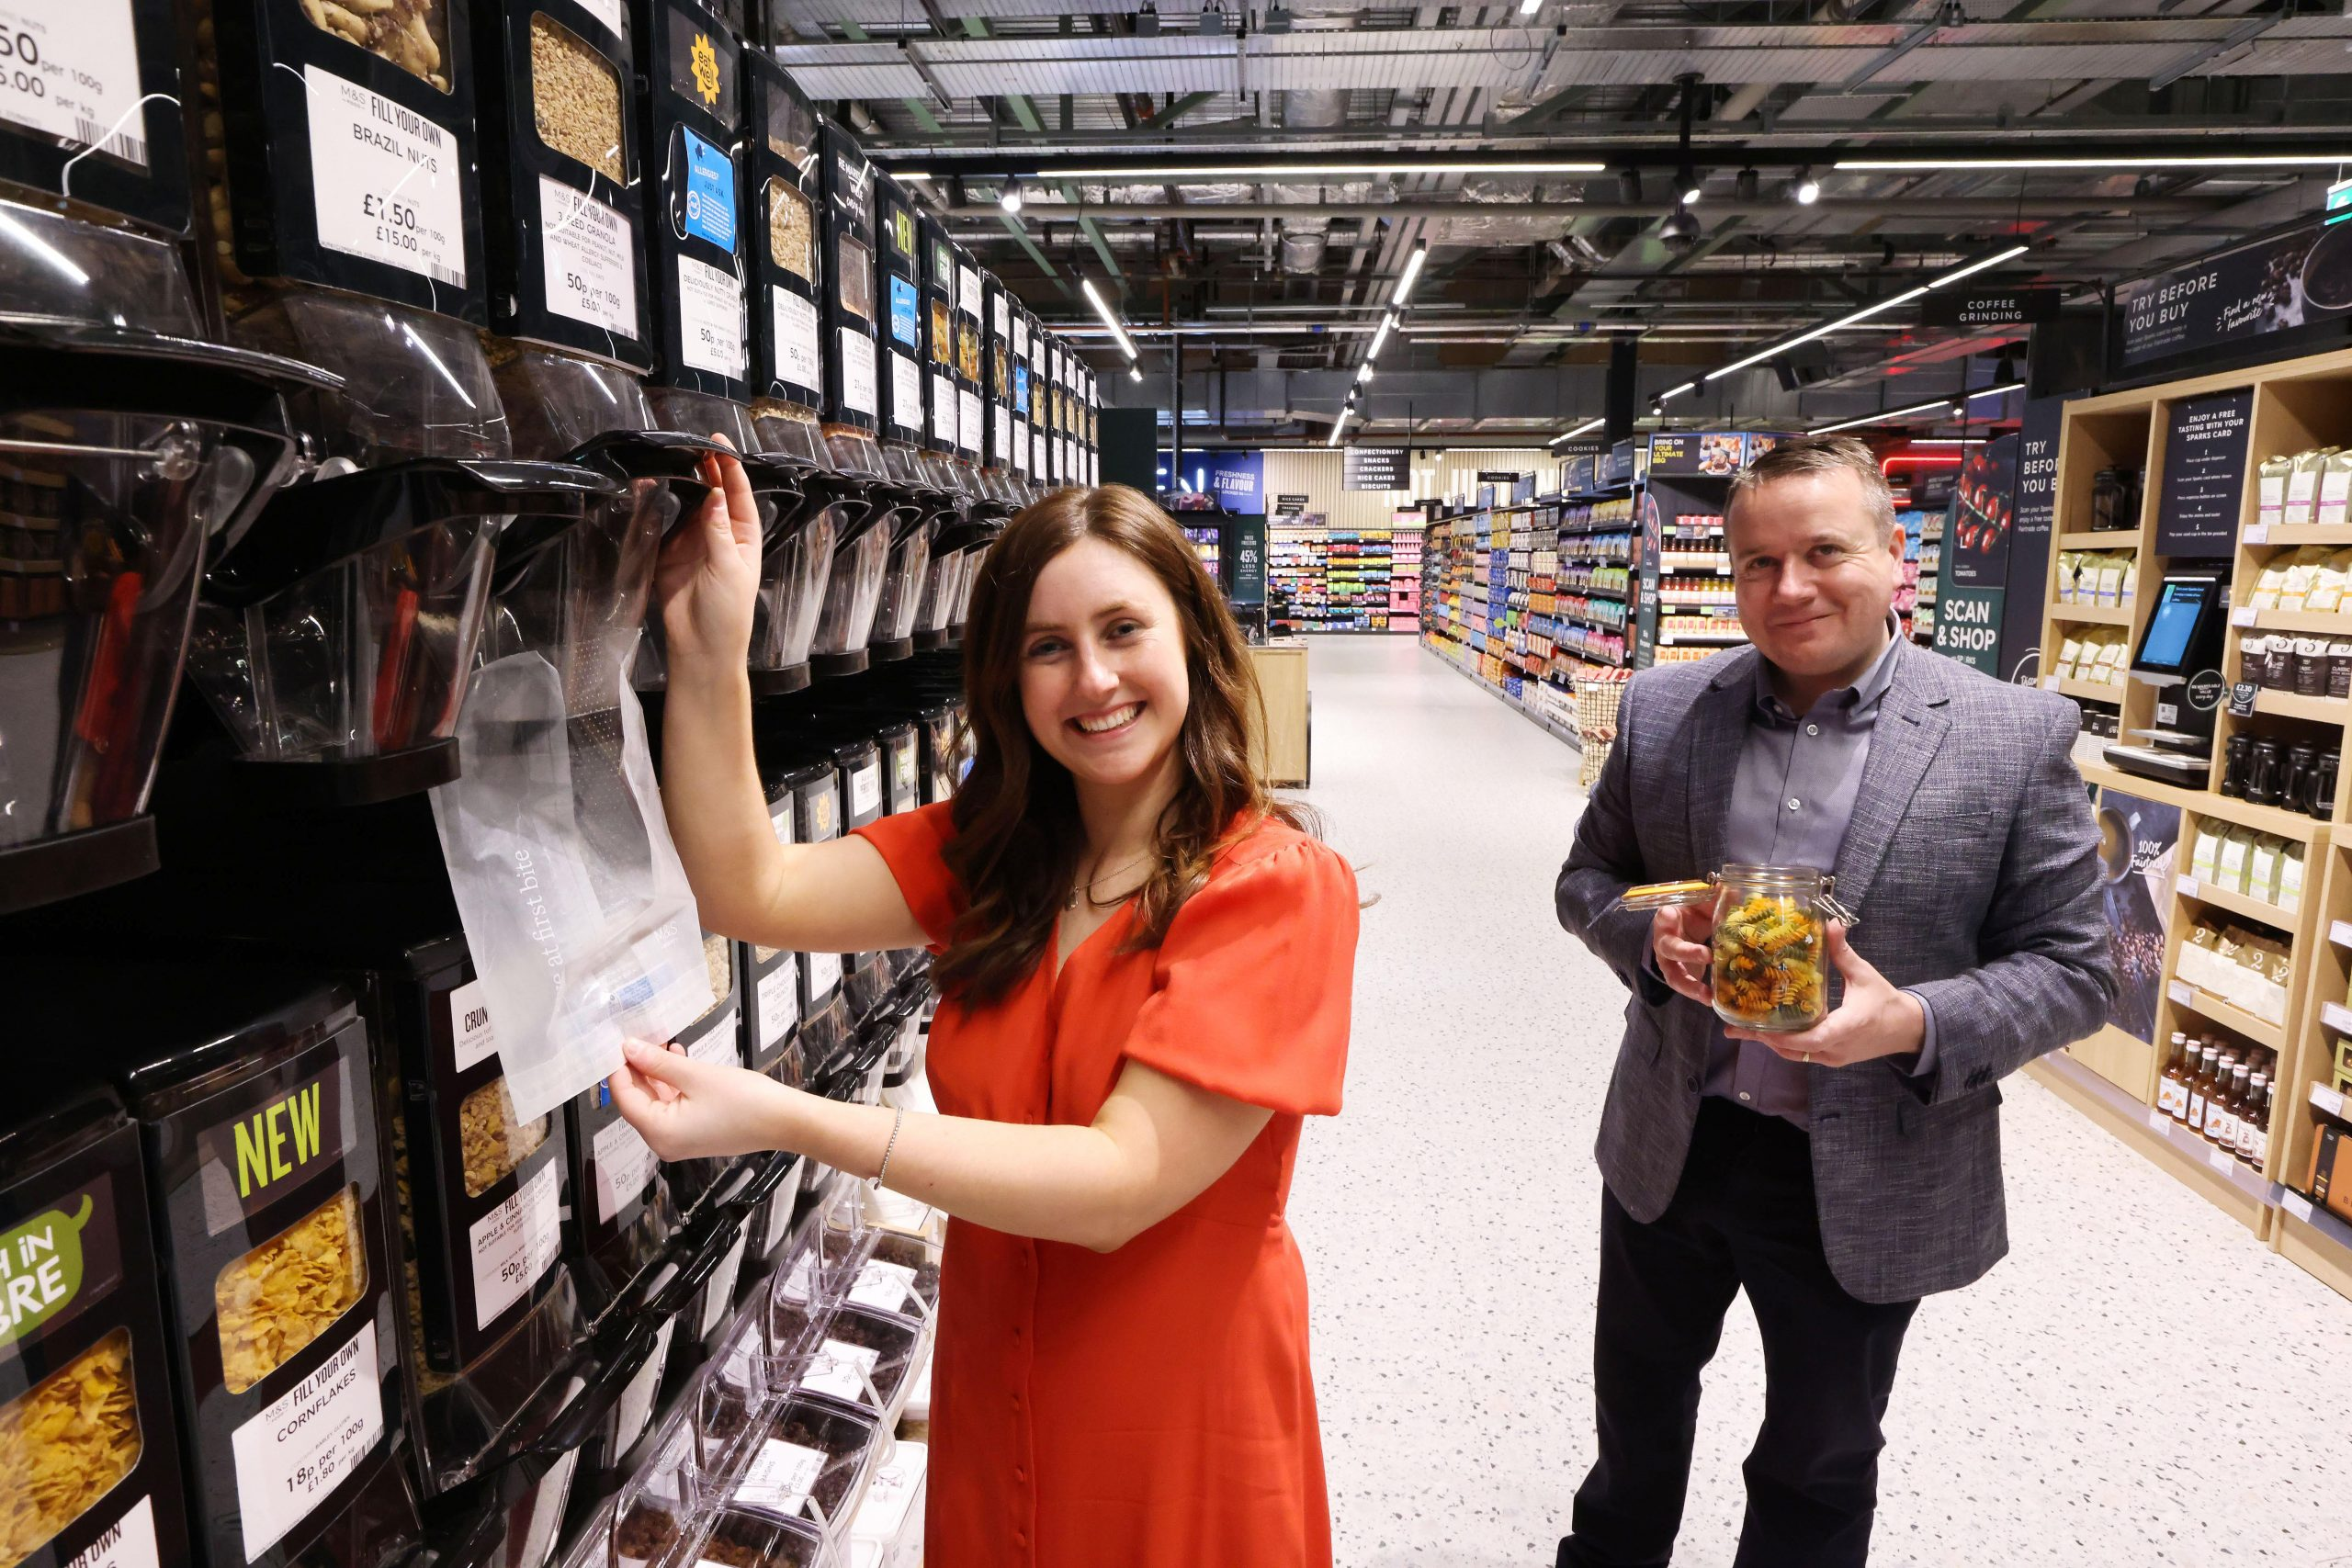 M&S Sprucefield Foodhall transformed in 'renewal programme'